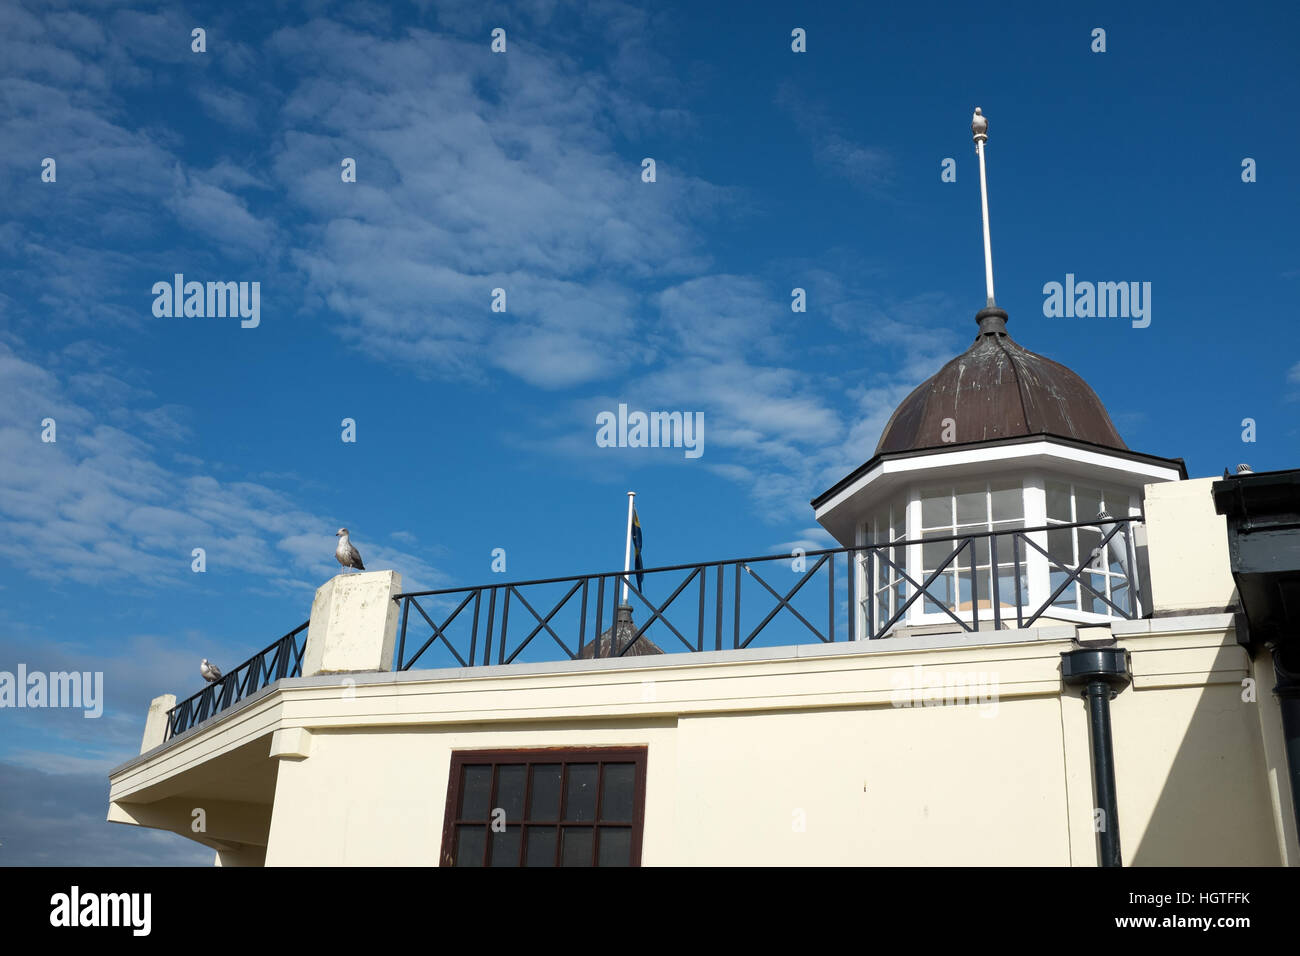 Herne Bay Central Bandstand with bright blue sky and Seagulls - Stock Image